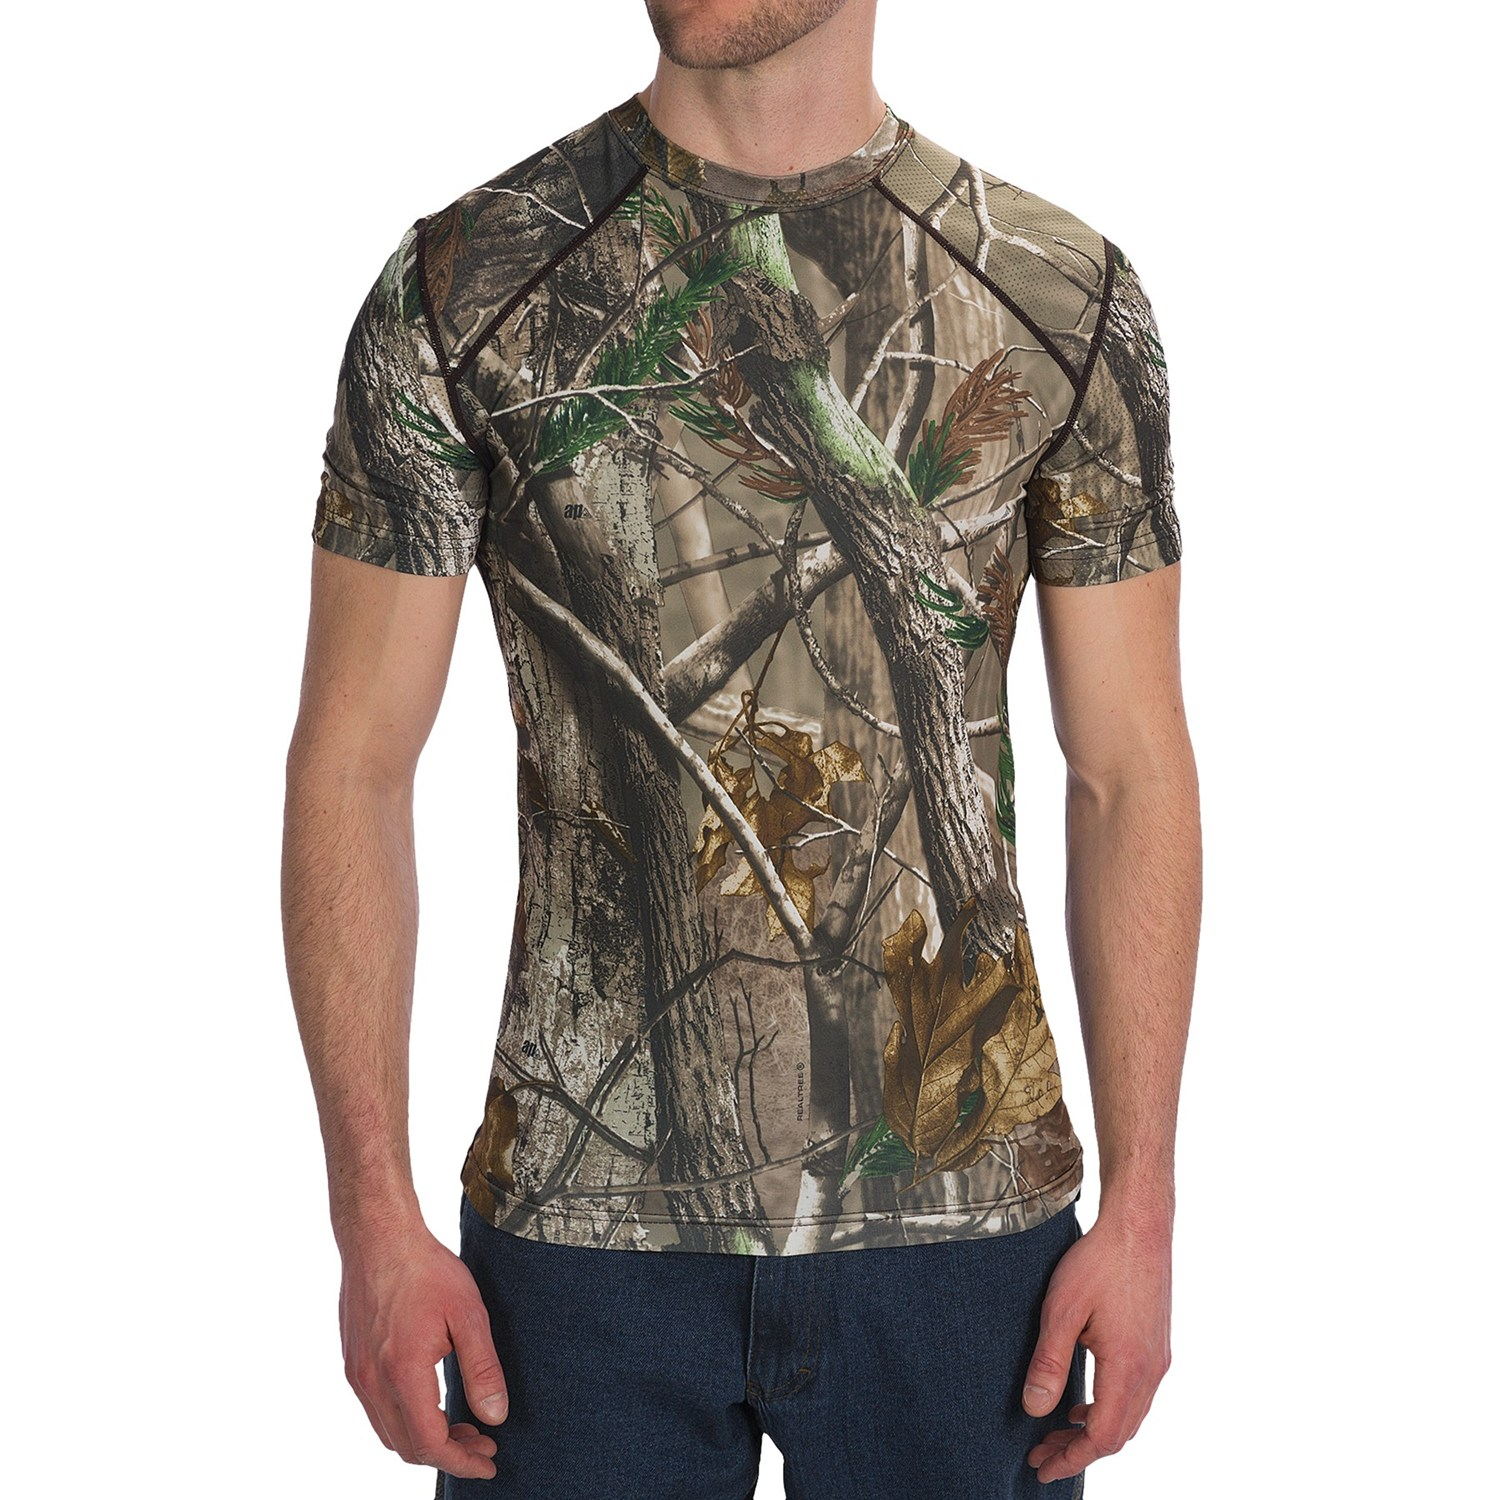 terramar-camo-essentials-shirt-crew-neck-short-sleeve-for-men-in-realtree-ap~p~5452f_01~1500.2